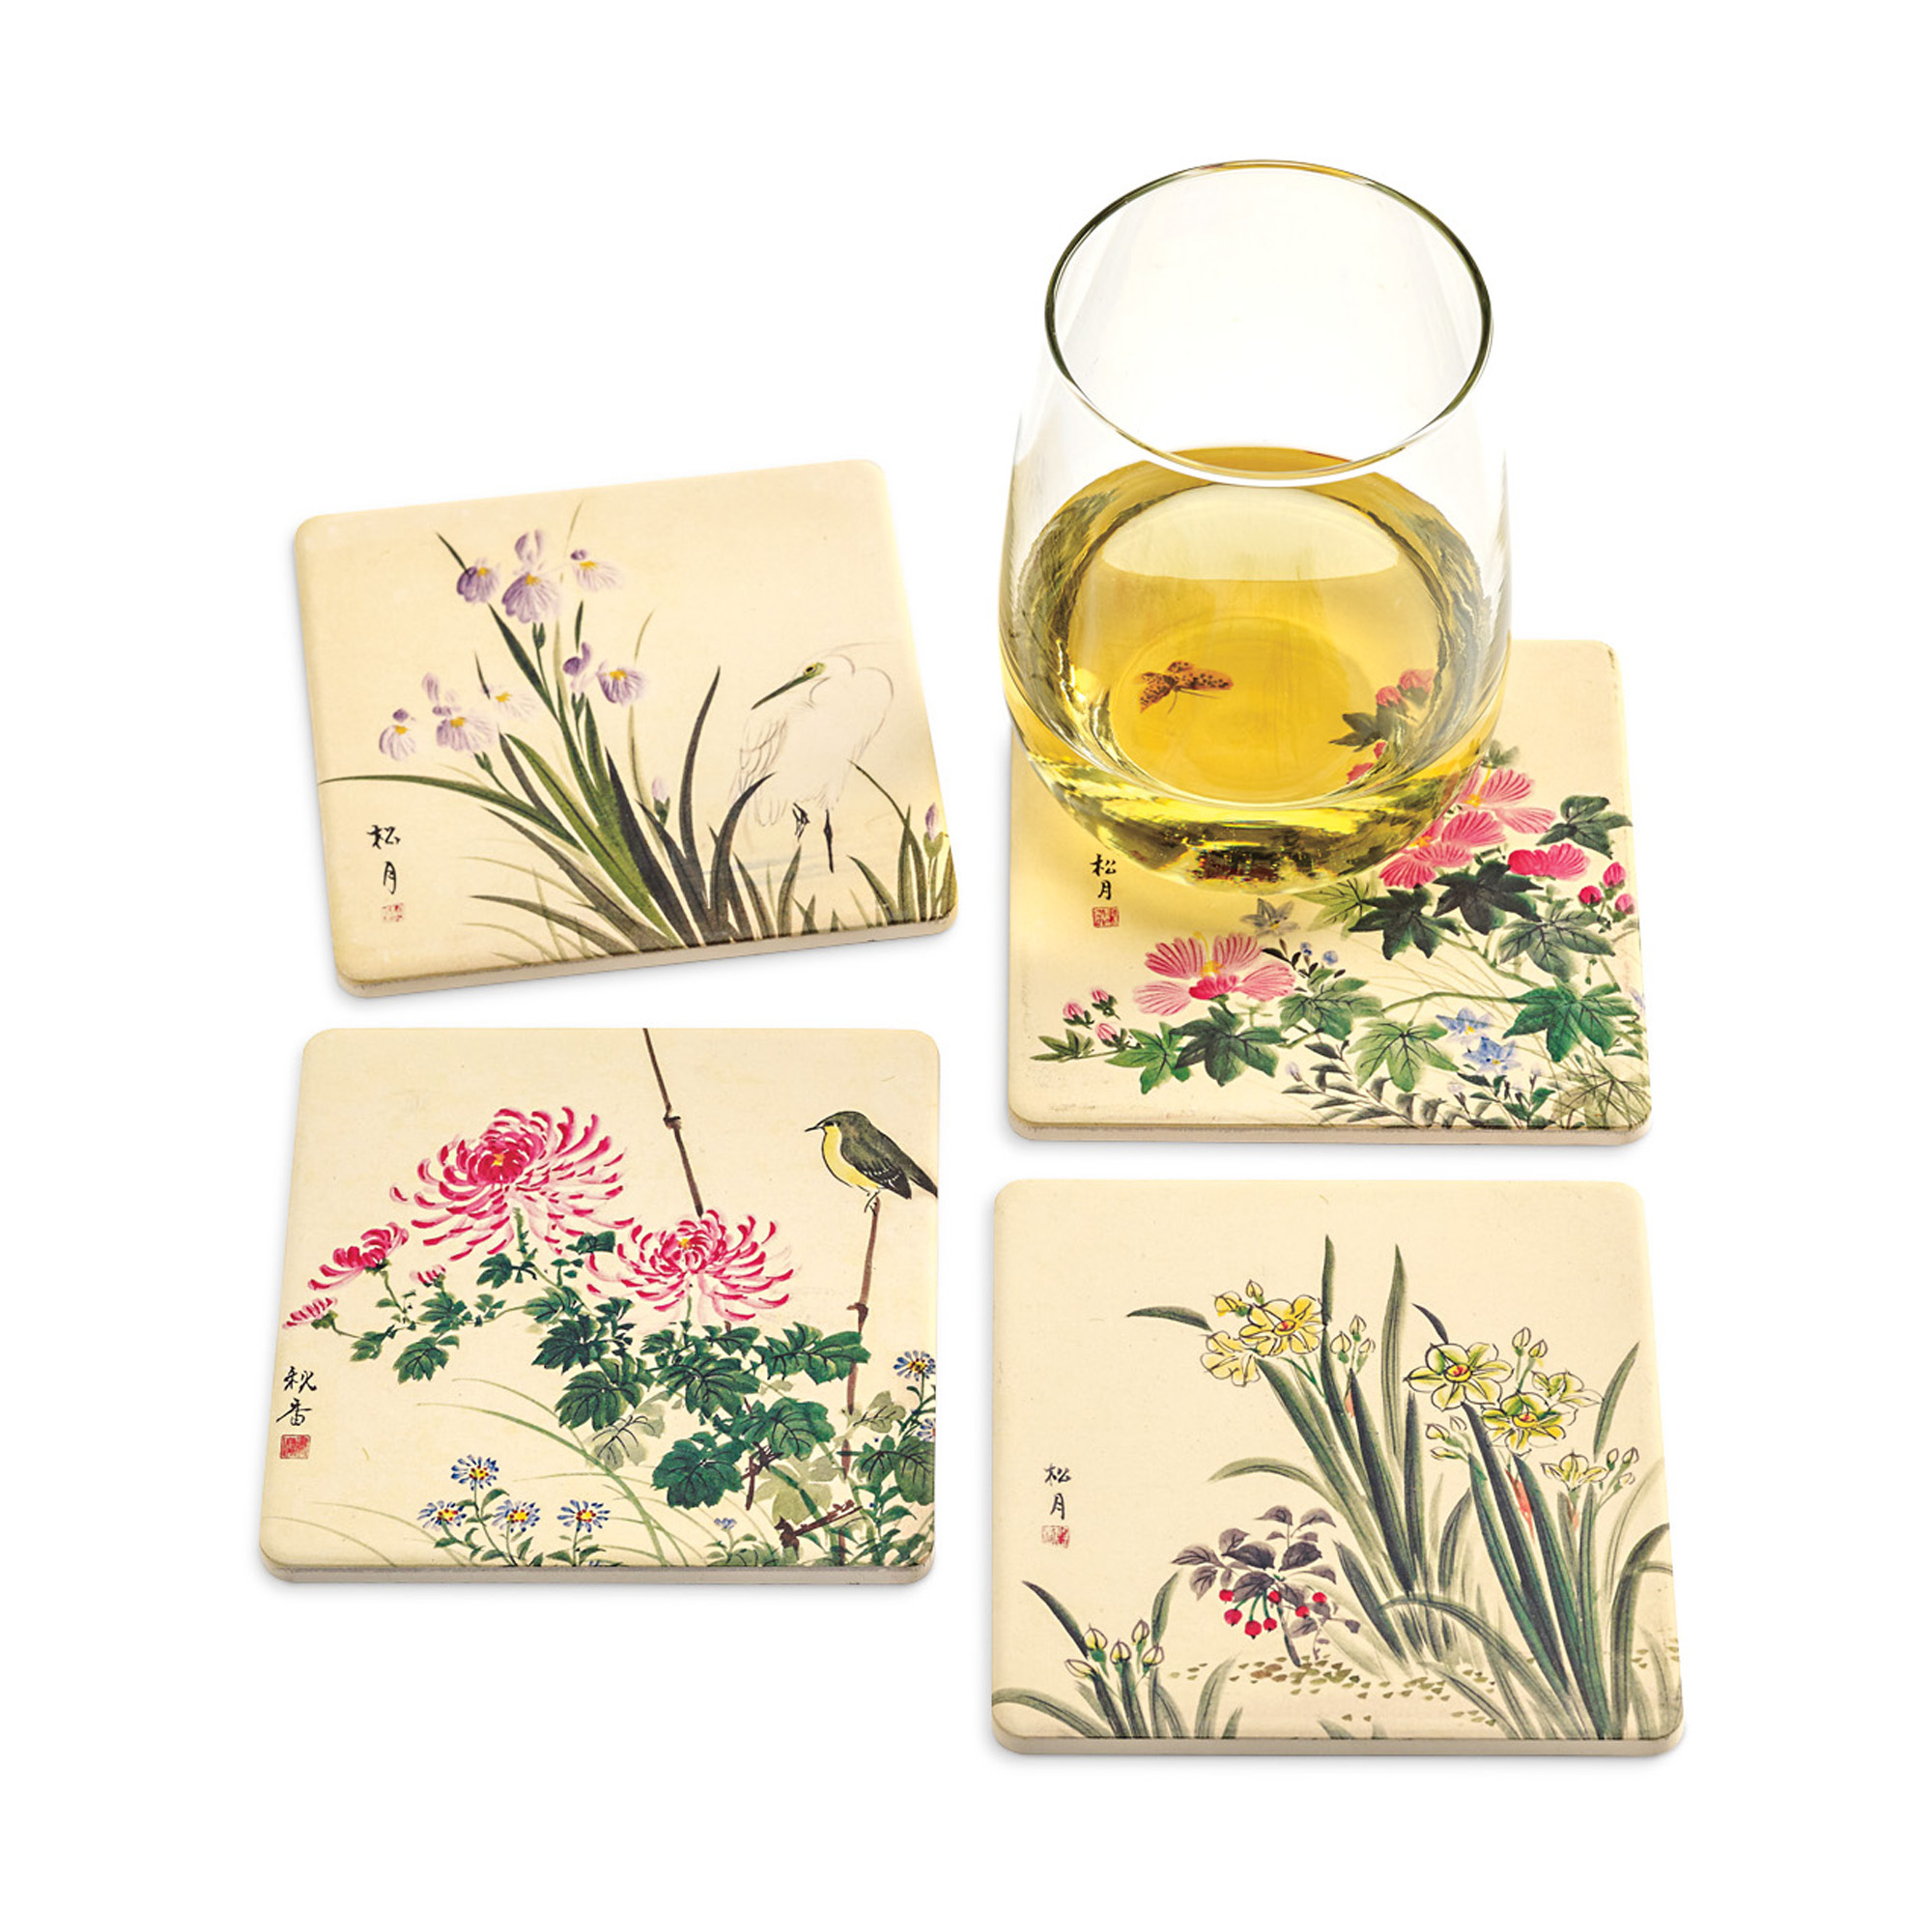 Palace Garden Coasters